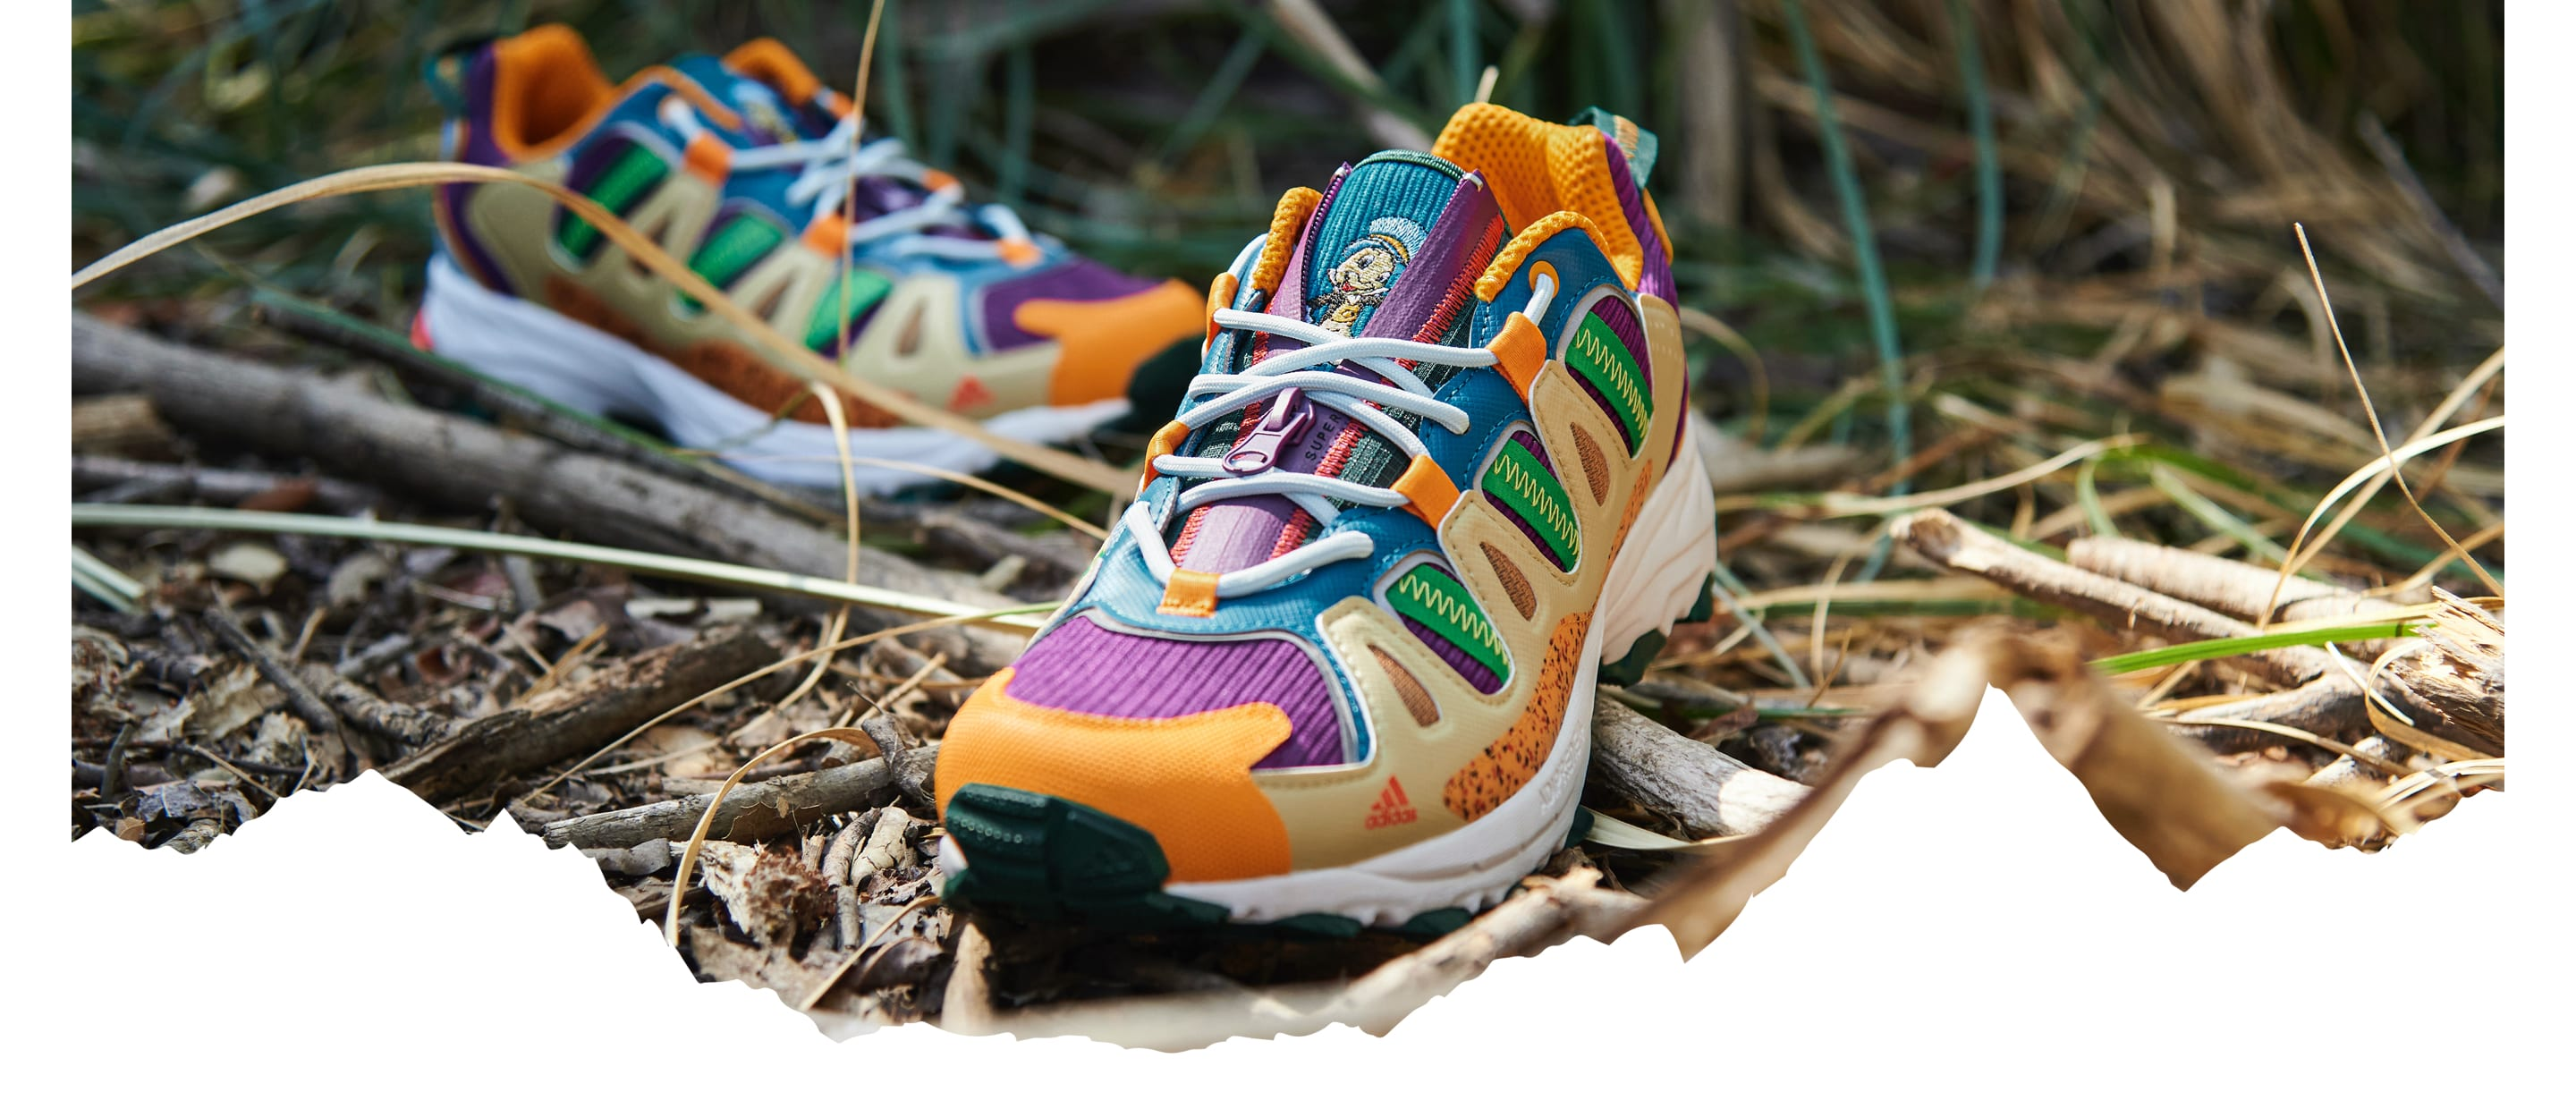 A pair of colourful Superturf Adventure sneakers on the ground, covered with sticks, branches and grass.